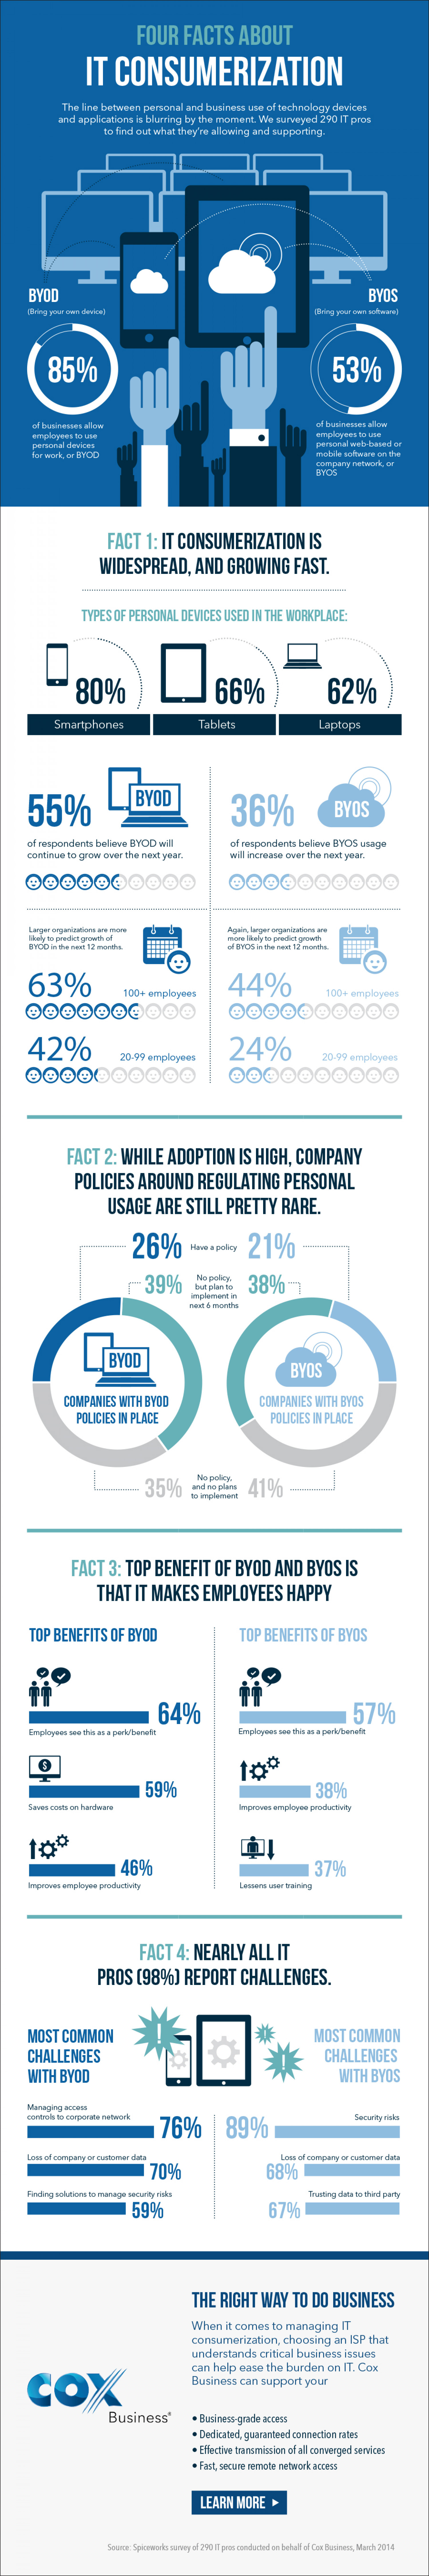 Some Facts About IT Consumerization Infographic